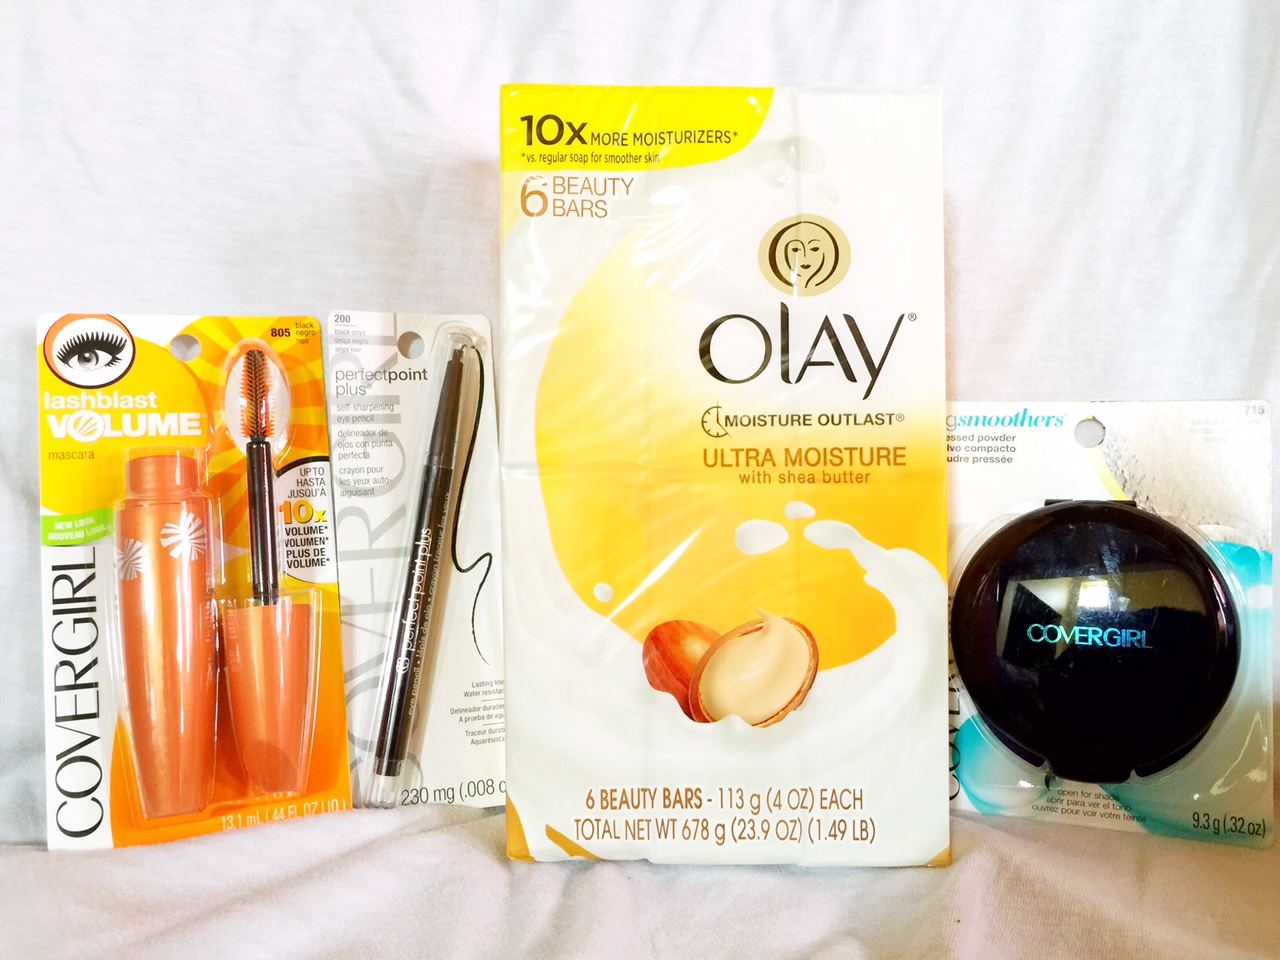 olayandcovergirl 4 products